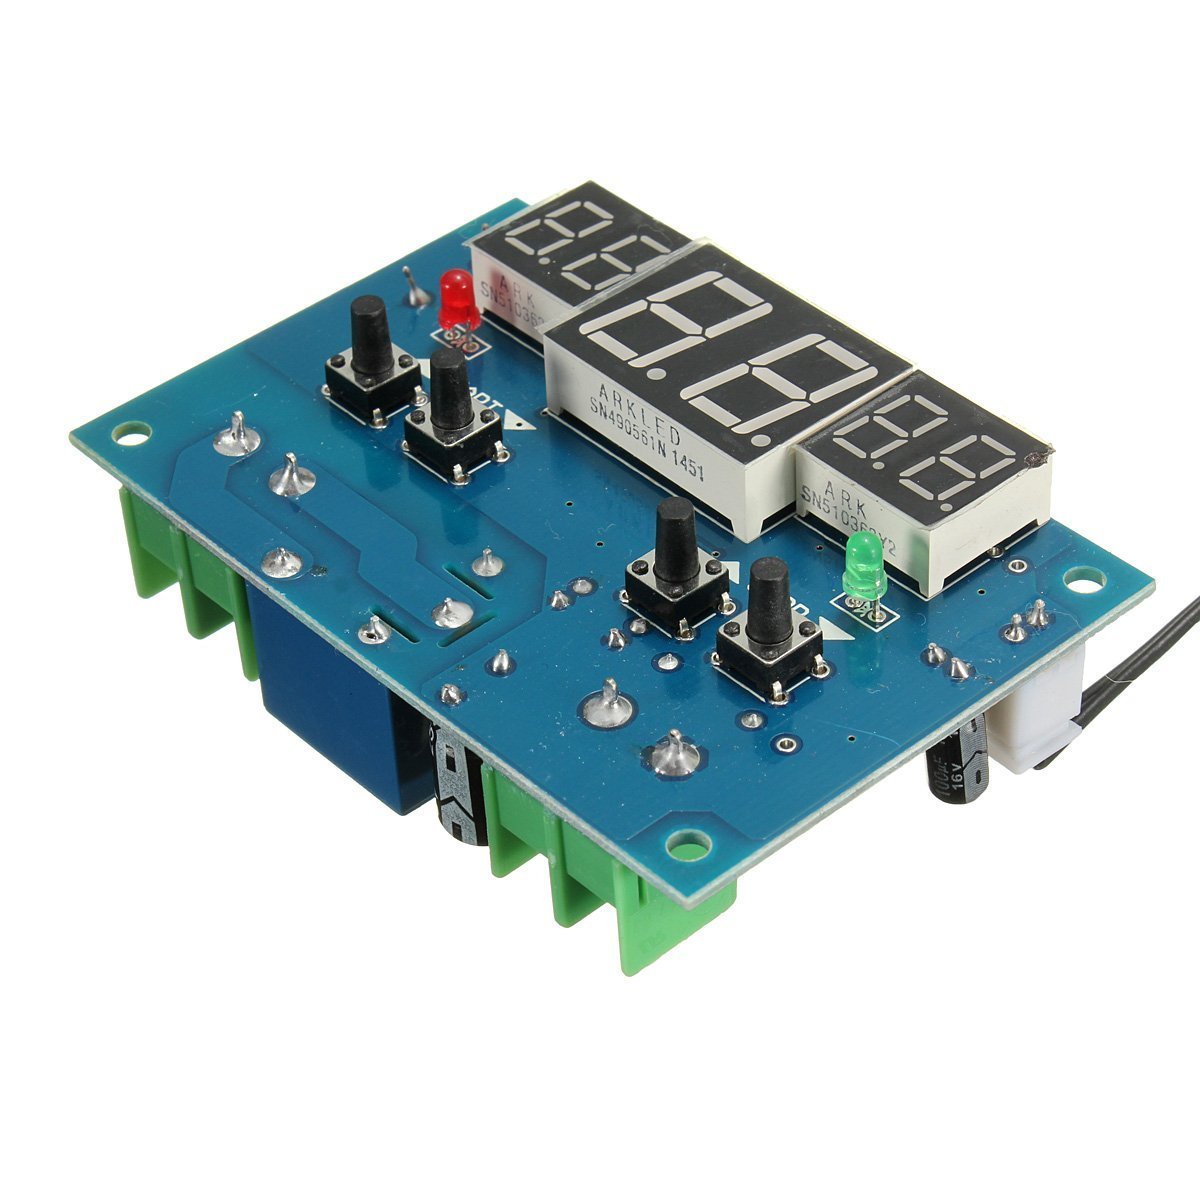 BephaMart W1401 DC 12V Intelligent Digital Temperature Controller Module Shipped and Sold by BephaMart